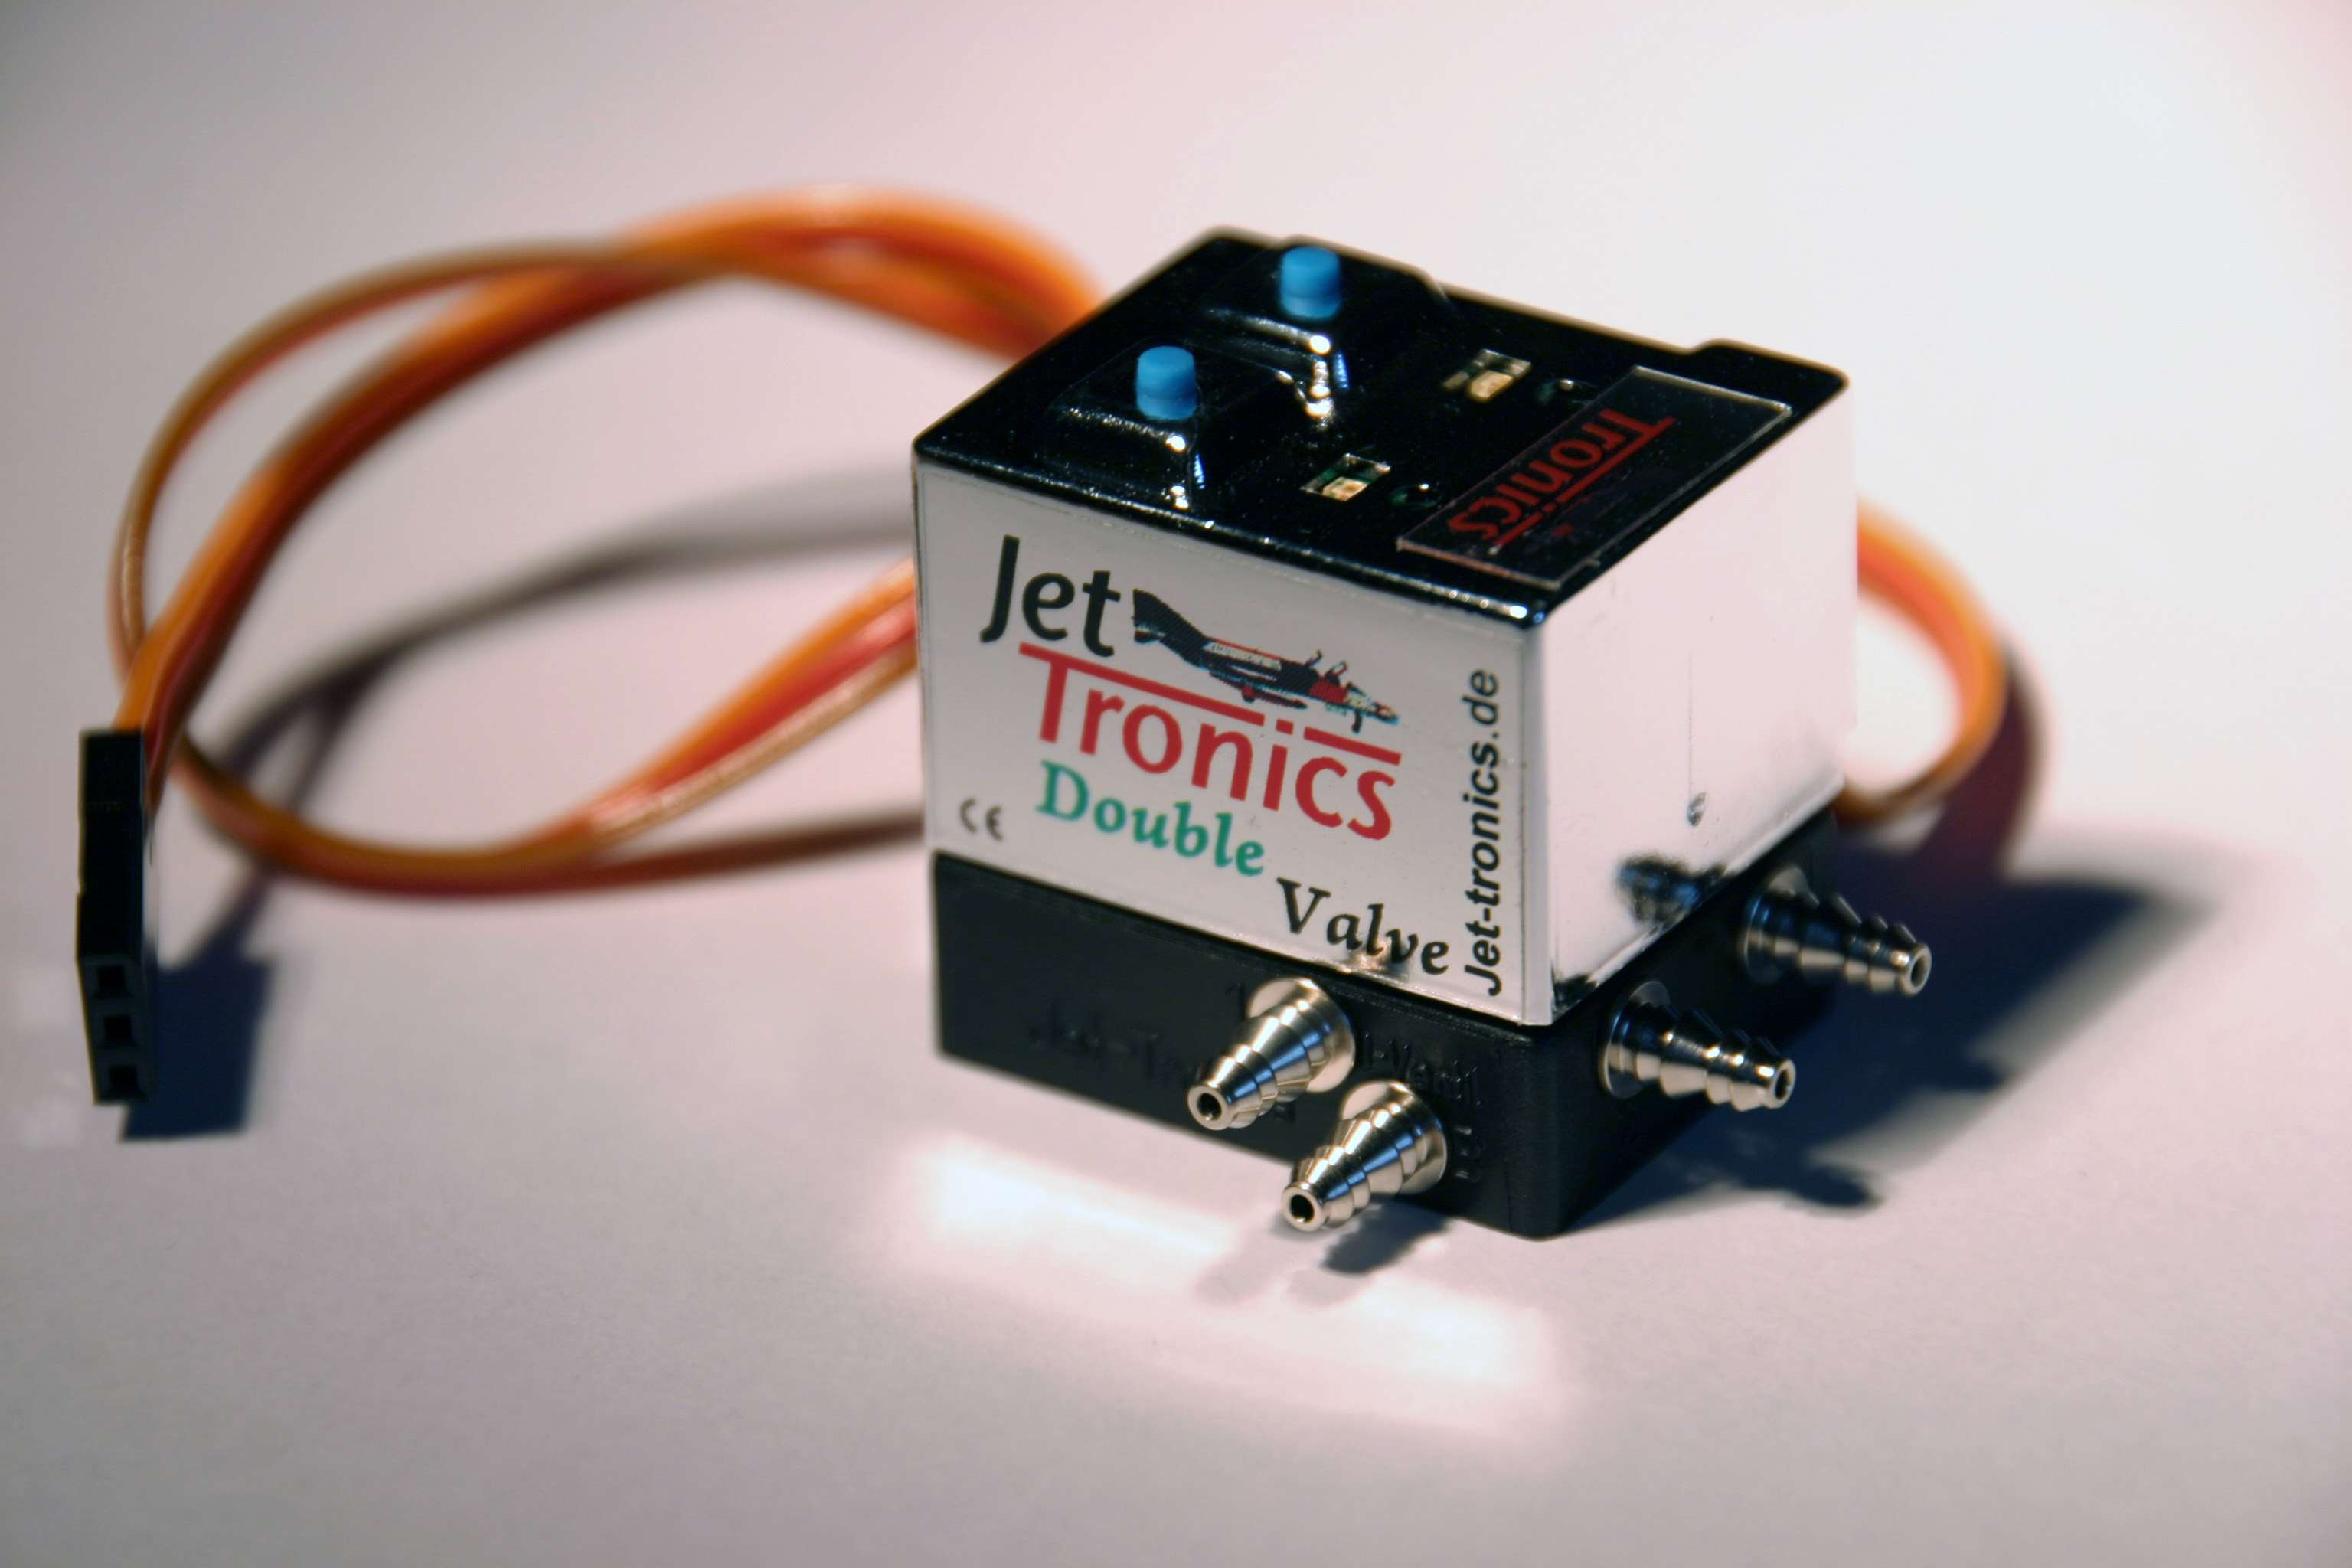 JetTronics Double Valve 2-Way